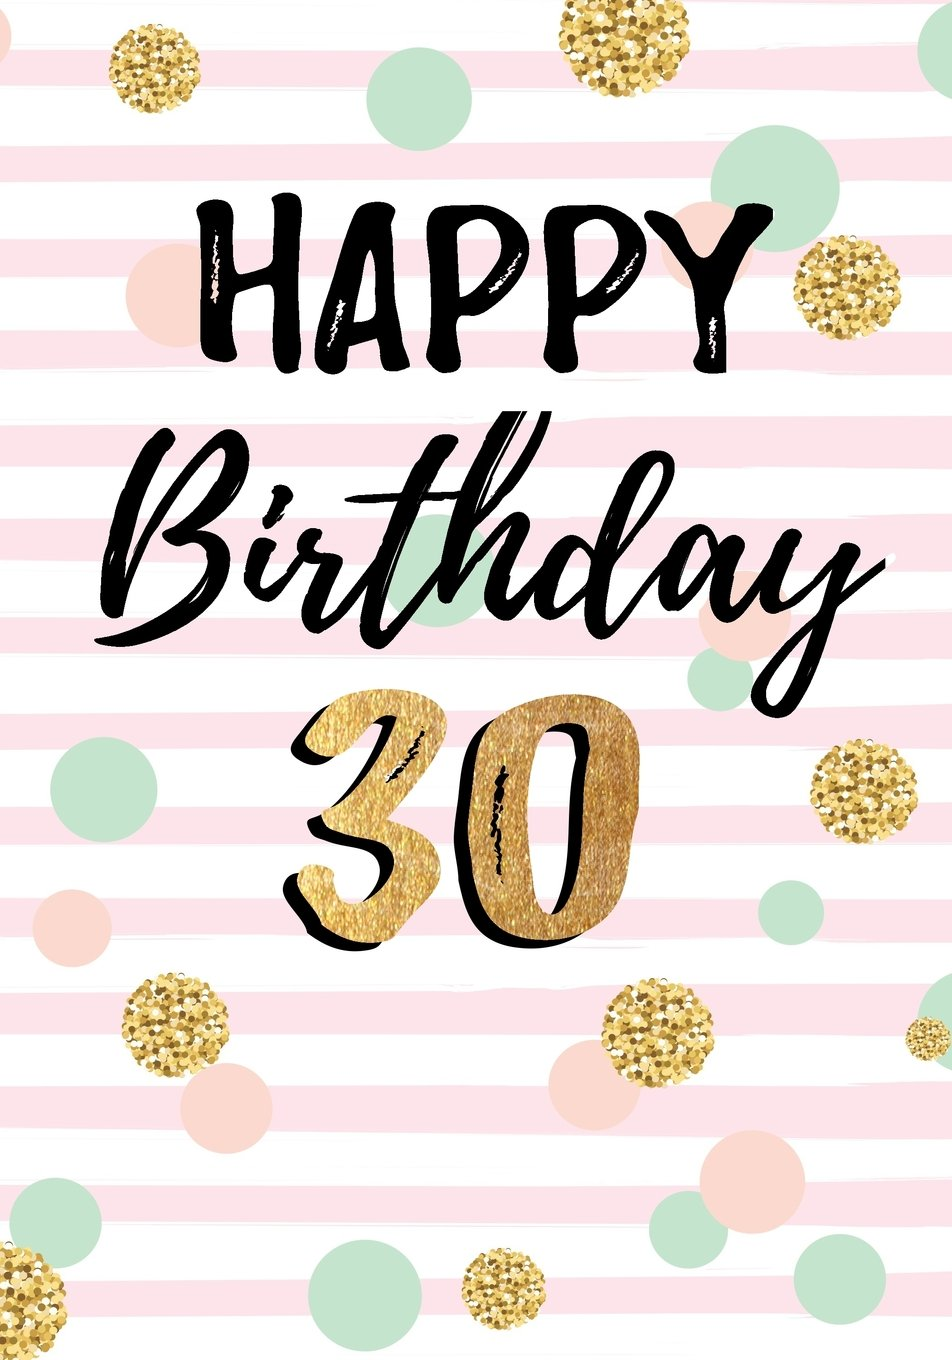 Happy Birthday 30: Birthday Books For Women, Birthday Journal Notebook For 30 Year Old For Journaling & Doodling, 7 x 10, (Birthday Keepsake Book) Paperback – June 7, 2017 Dartan Creations 1547205318 Blank Books/Journals Non-Classifiable